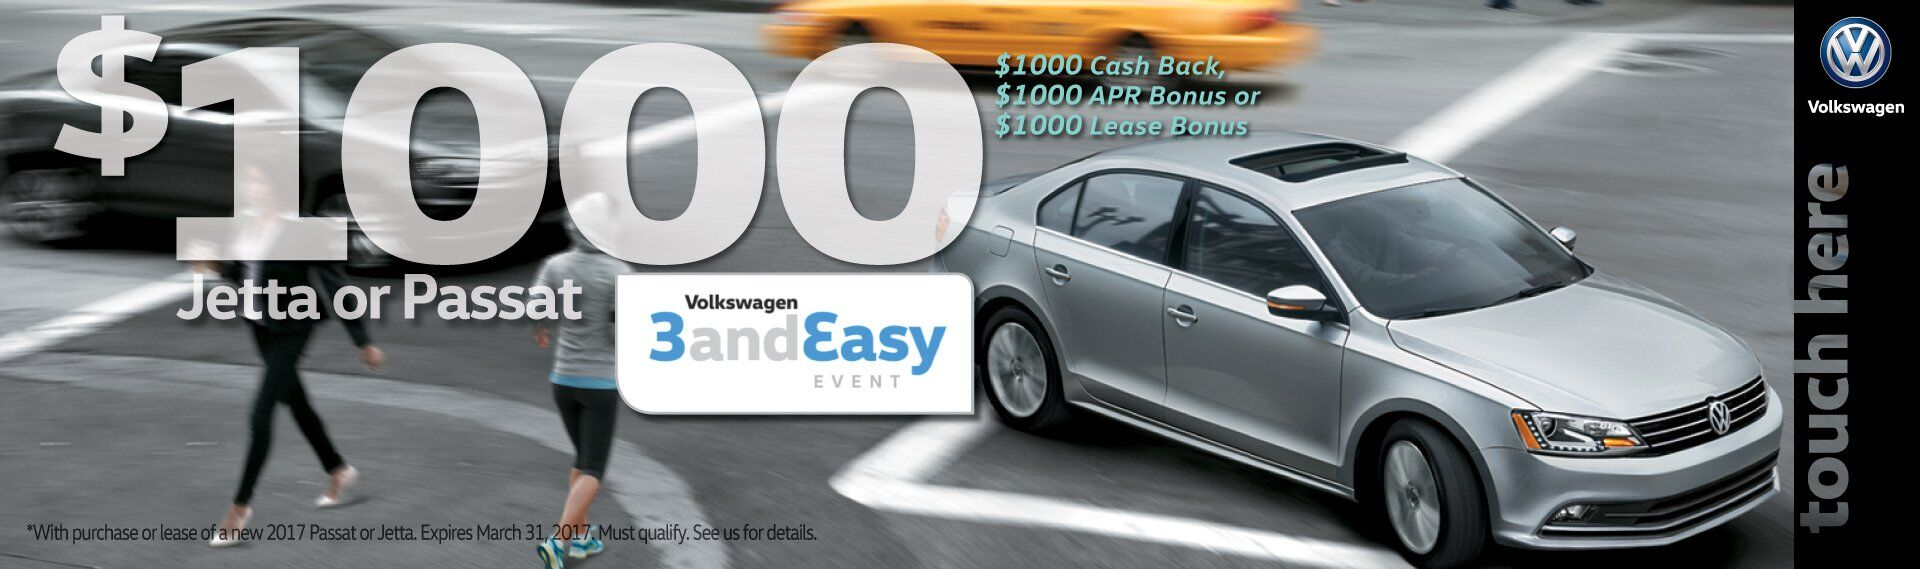 VW 3 and Easy Sales event